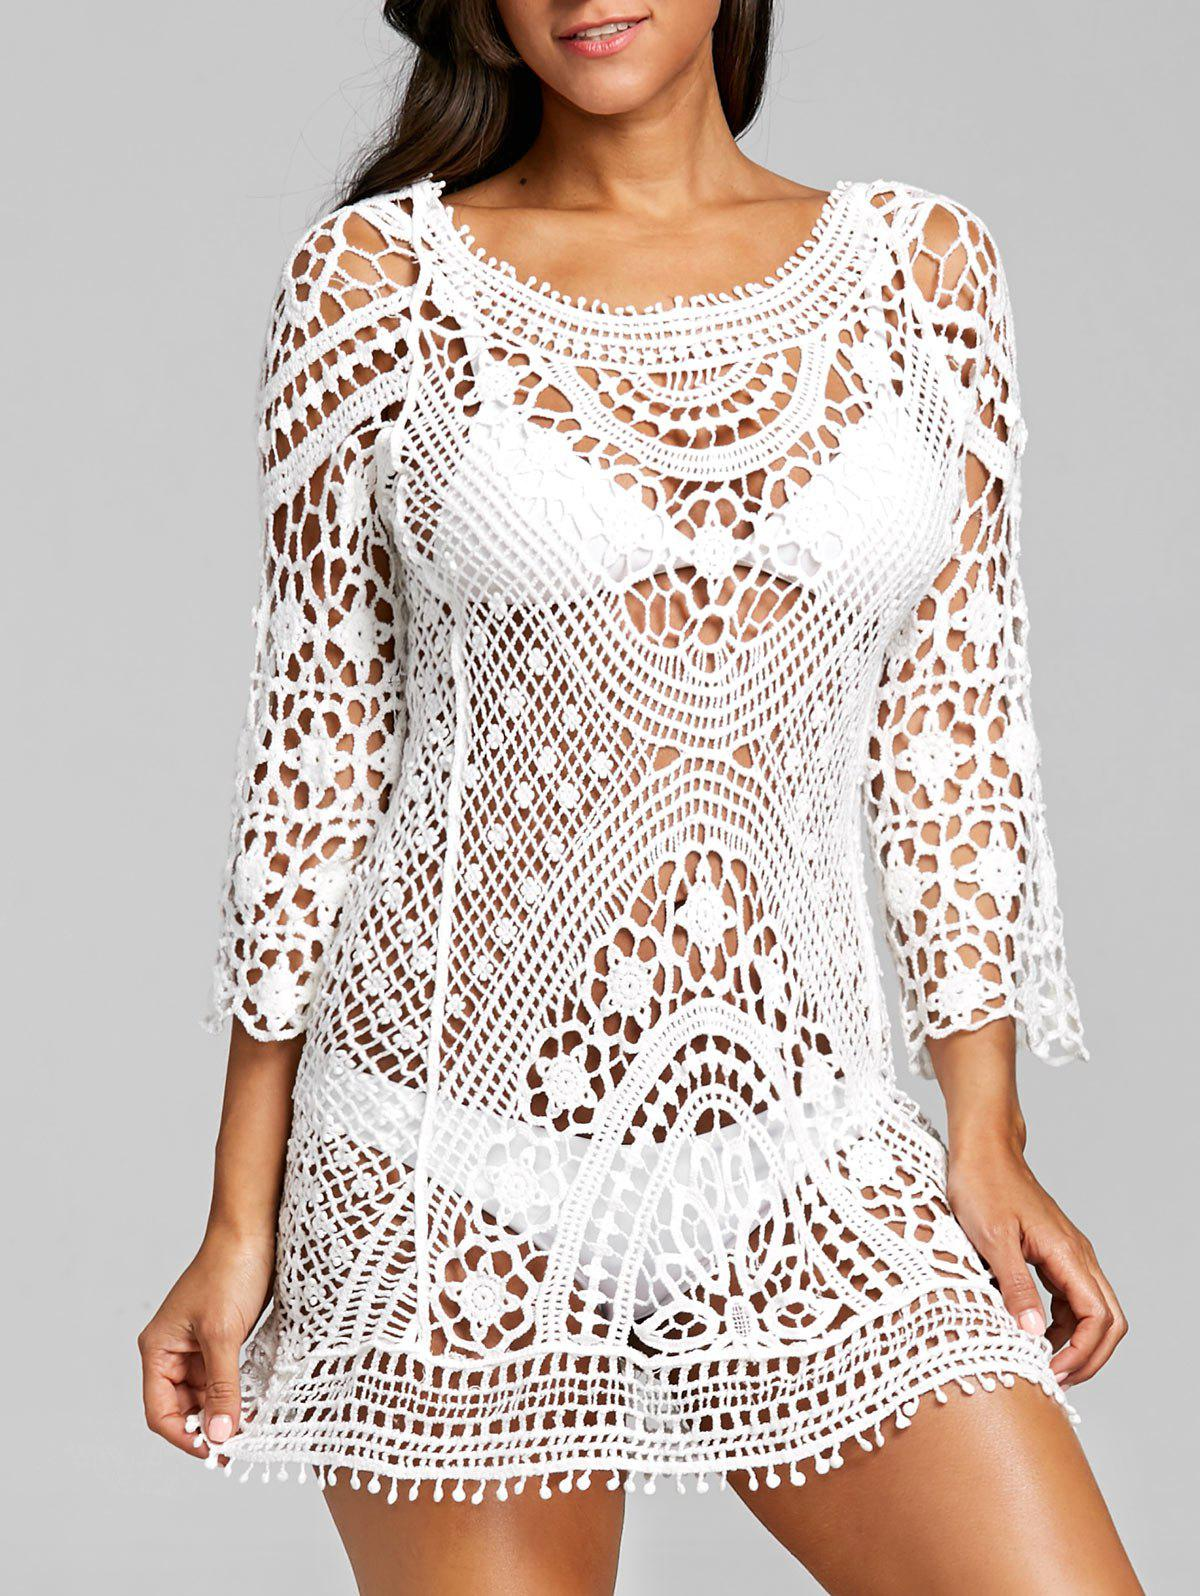 Outfits Low Back Crochet Lace Cover Up Top